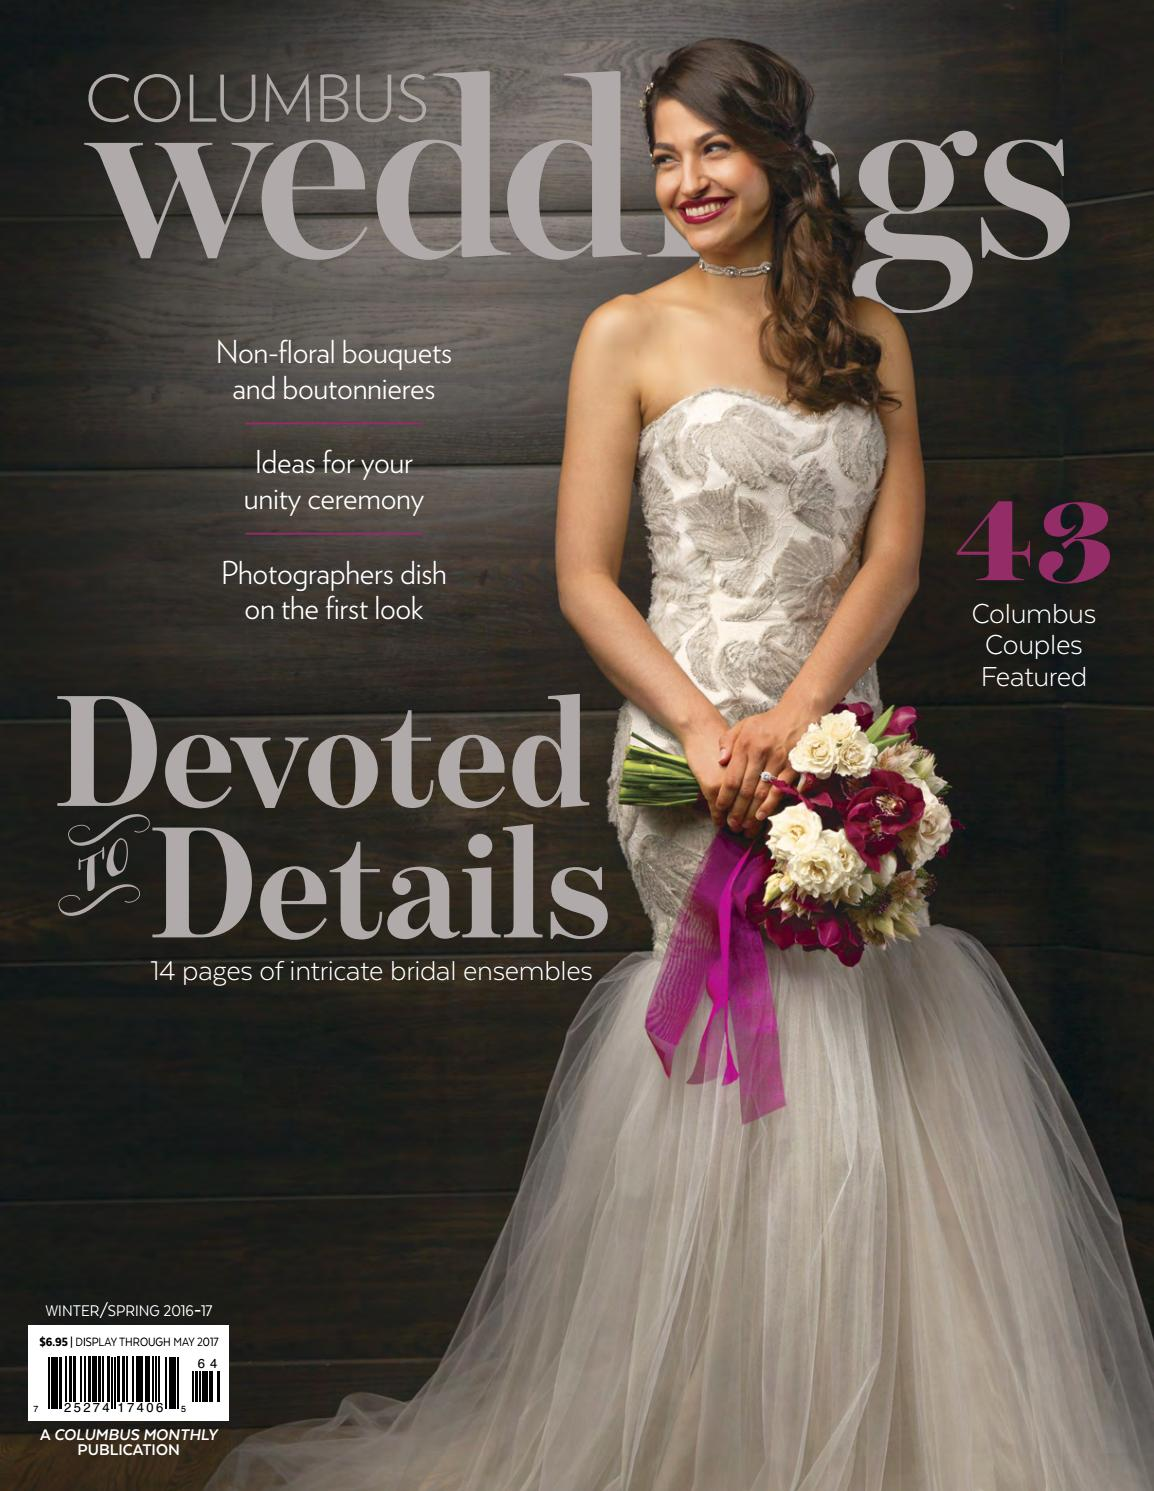 Columbus Weddings by The Columbus Dispatch - issuu